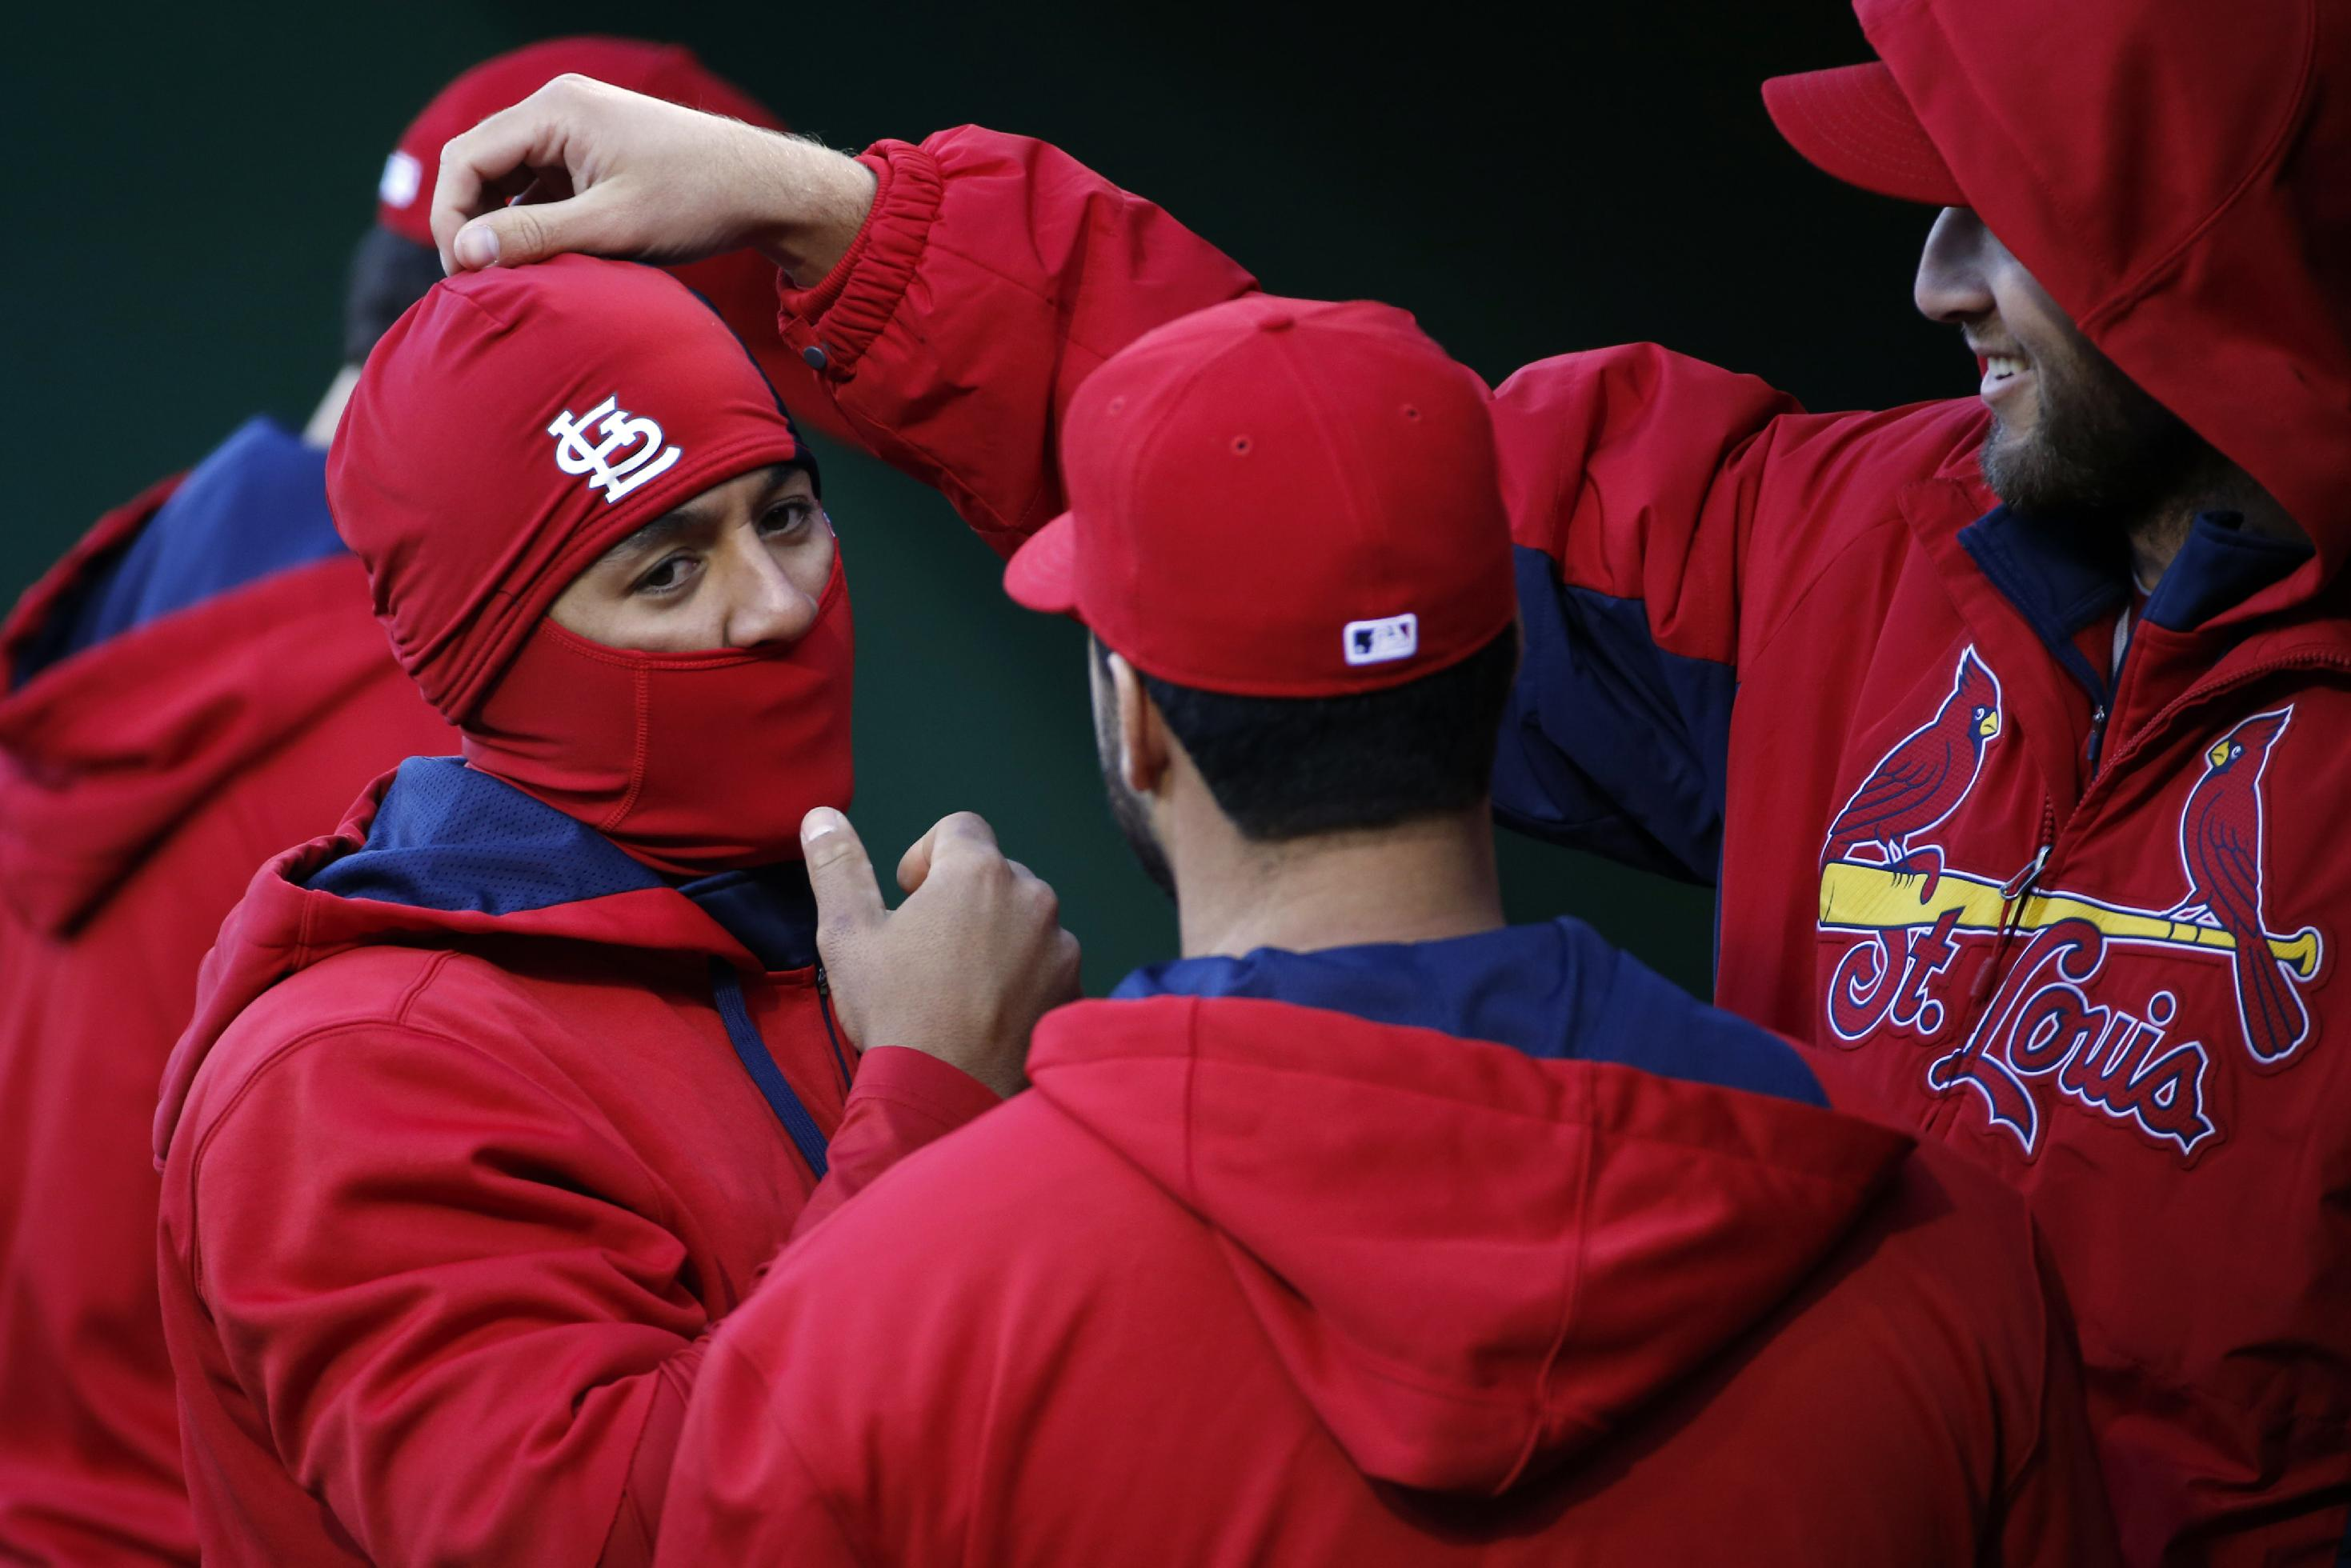 St. Louis Cardinals starting pitcher Michael Wacha, right, and Jon Jay, left, play around in the dugout before a baseball game against the Pittsburgh Pirates in Pittsburgh on Saturday, April 5, 2014. The Cardinals won 6-1